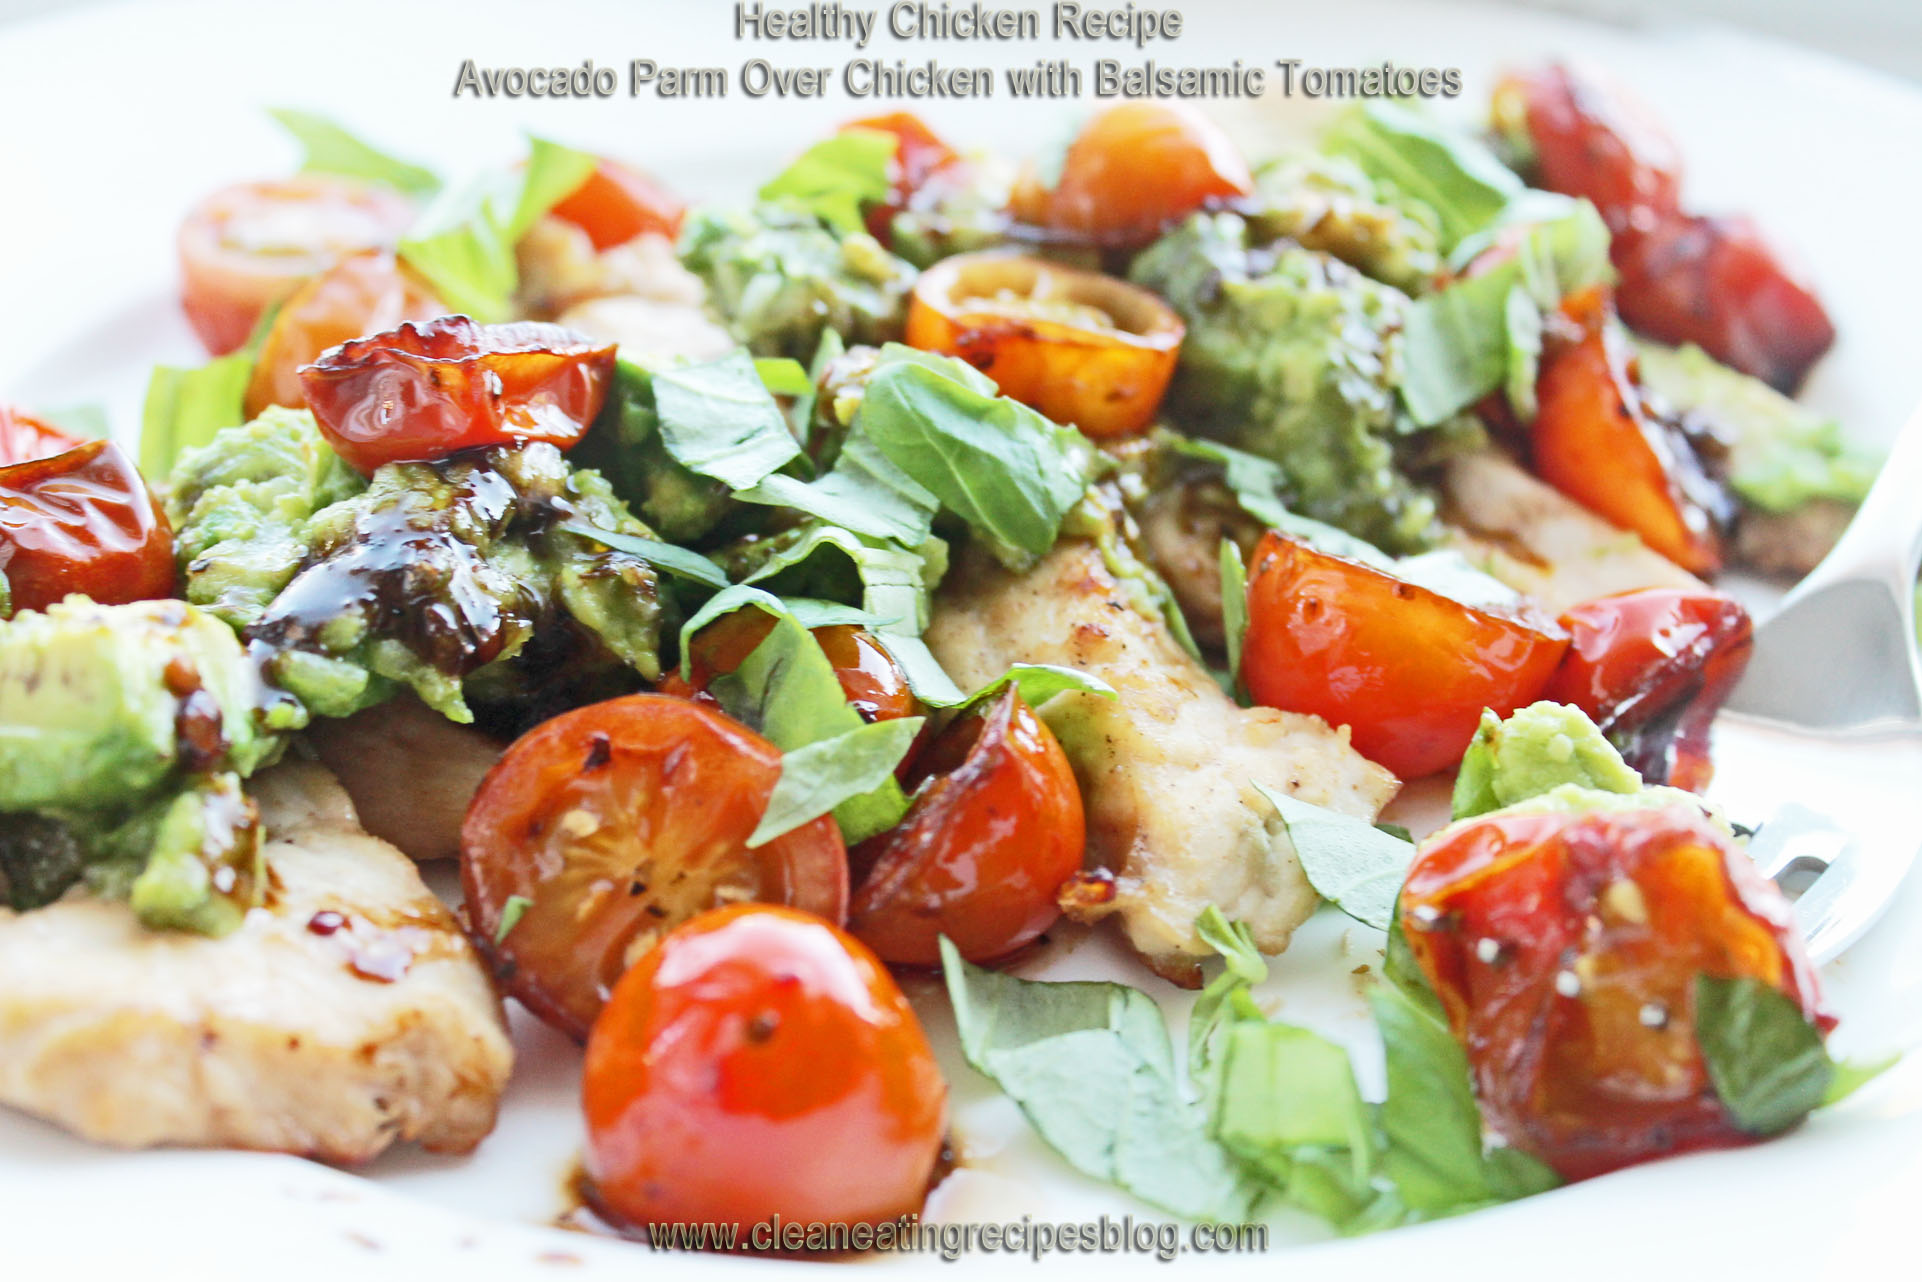 Healthy Chicken Recipe: Avocado and Parm Over Chicken With Balsamic Tomatoes